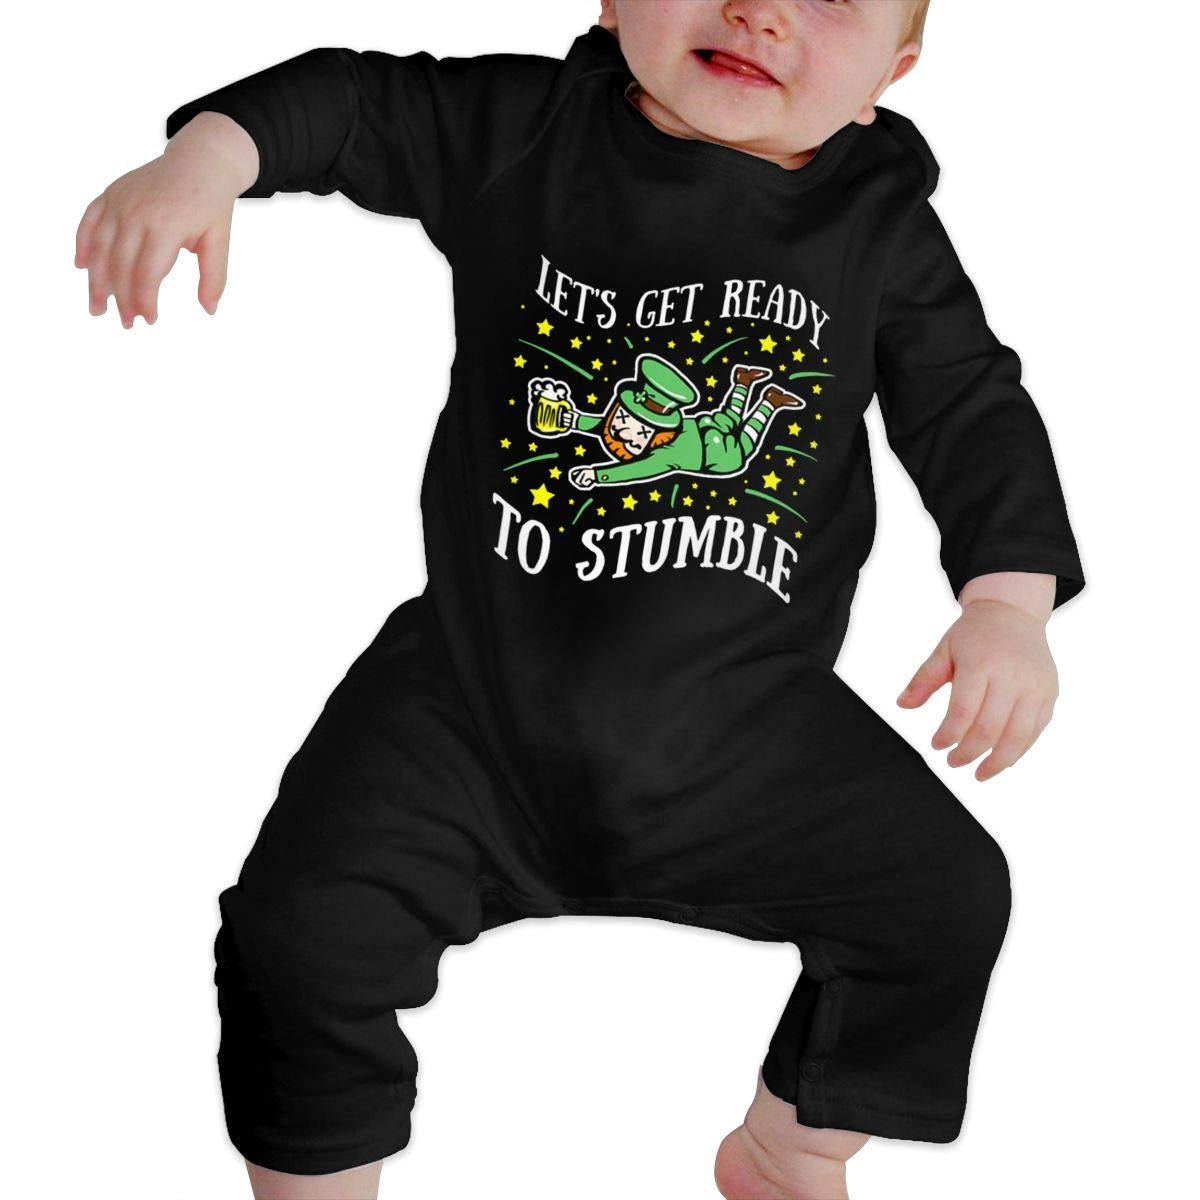 Fasenix Lets Get Ready to Stumble Newborn Baby Boy Girl Romper Jumpsuit Long Sleeve Bodysuit Overalls Outfits Clothes